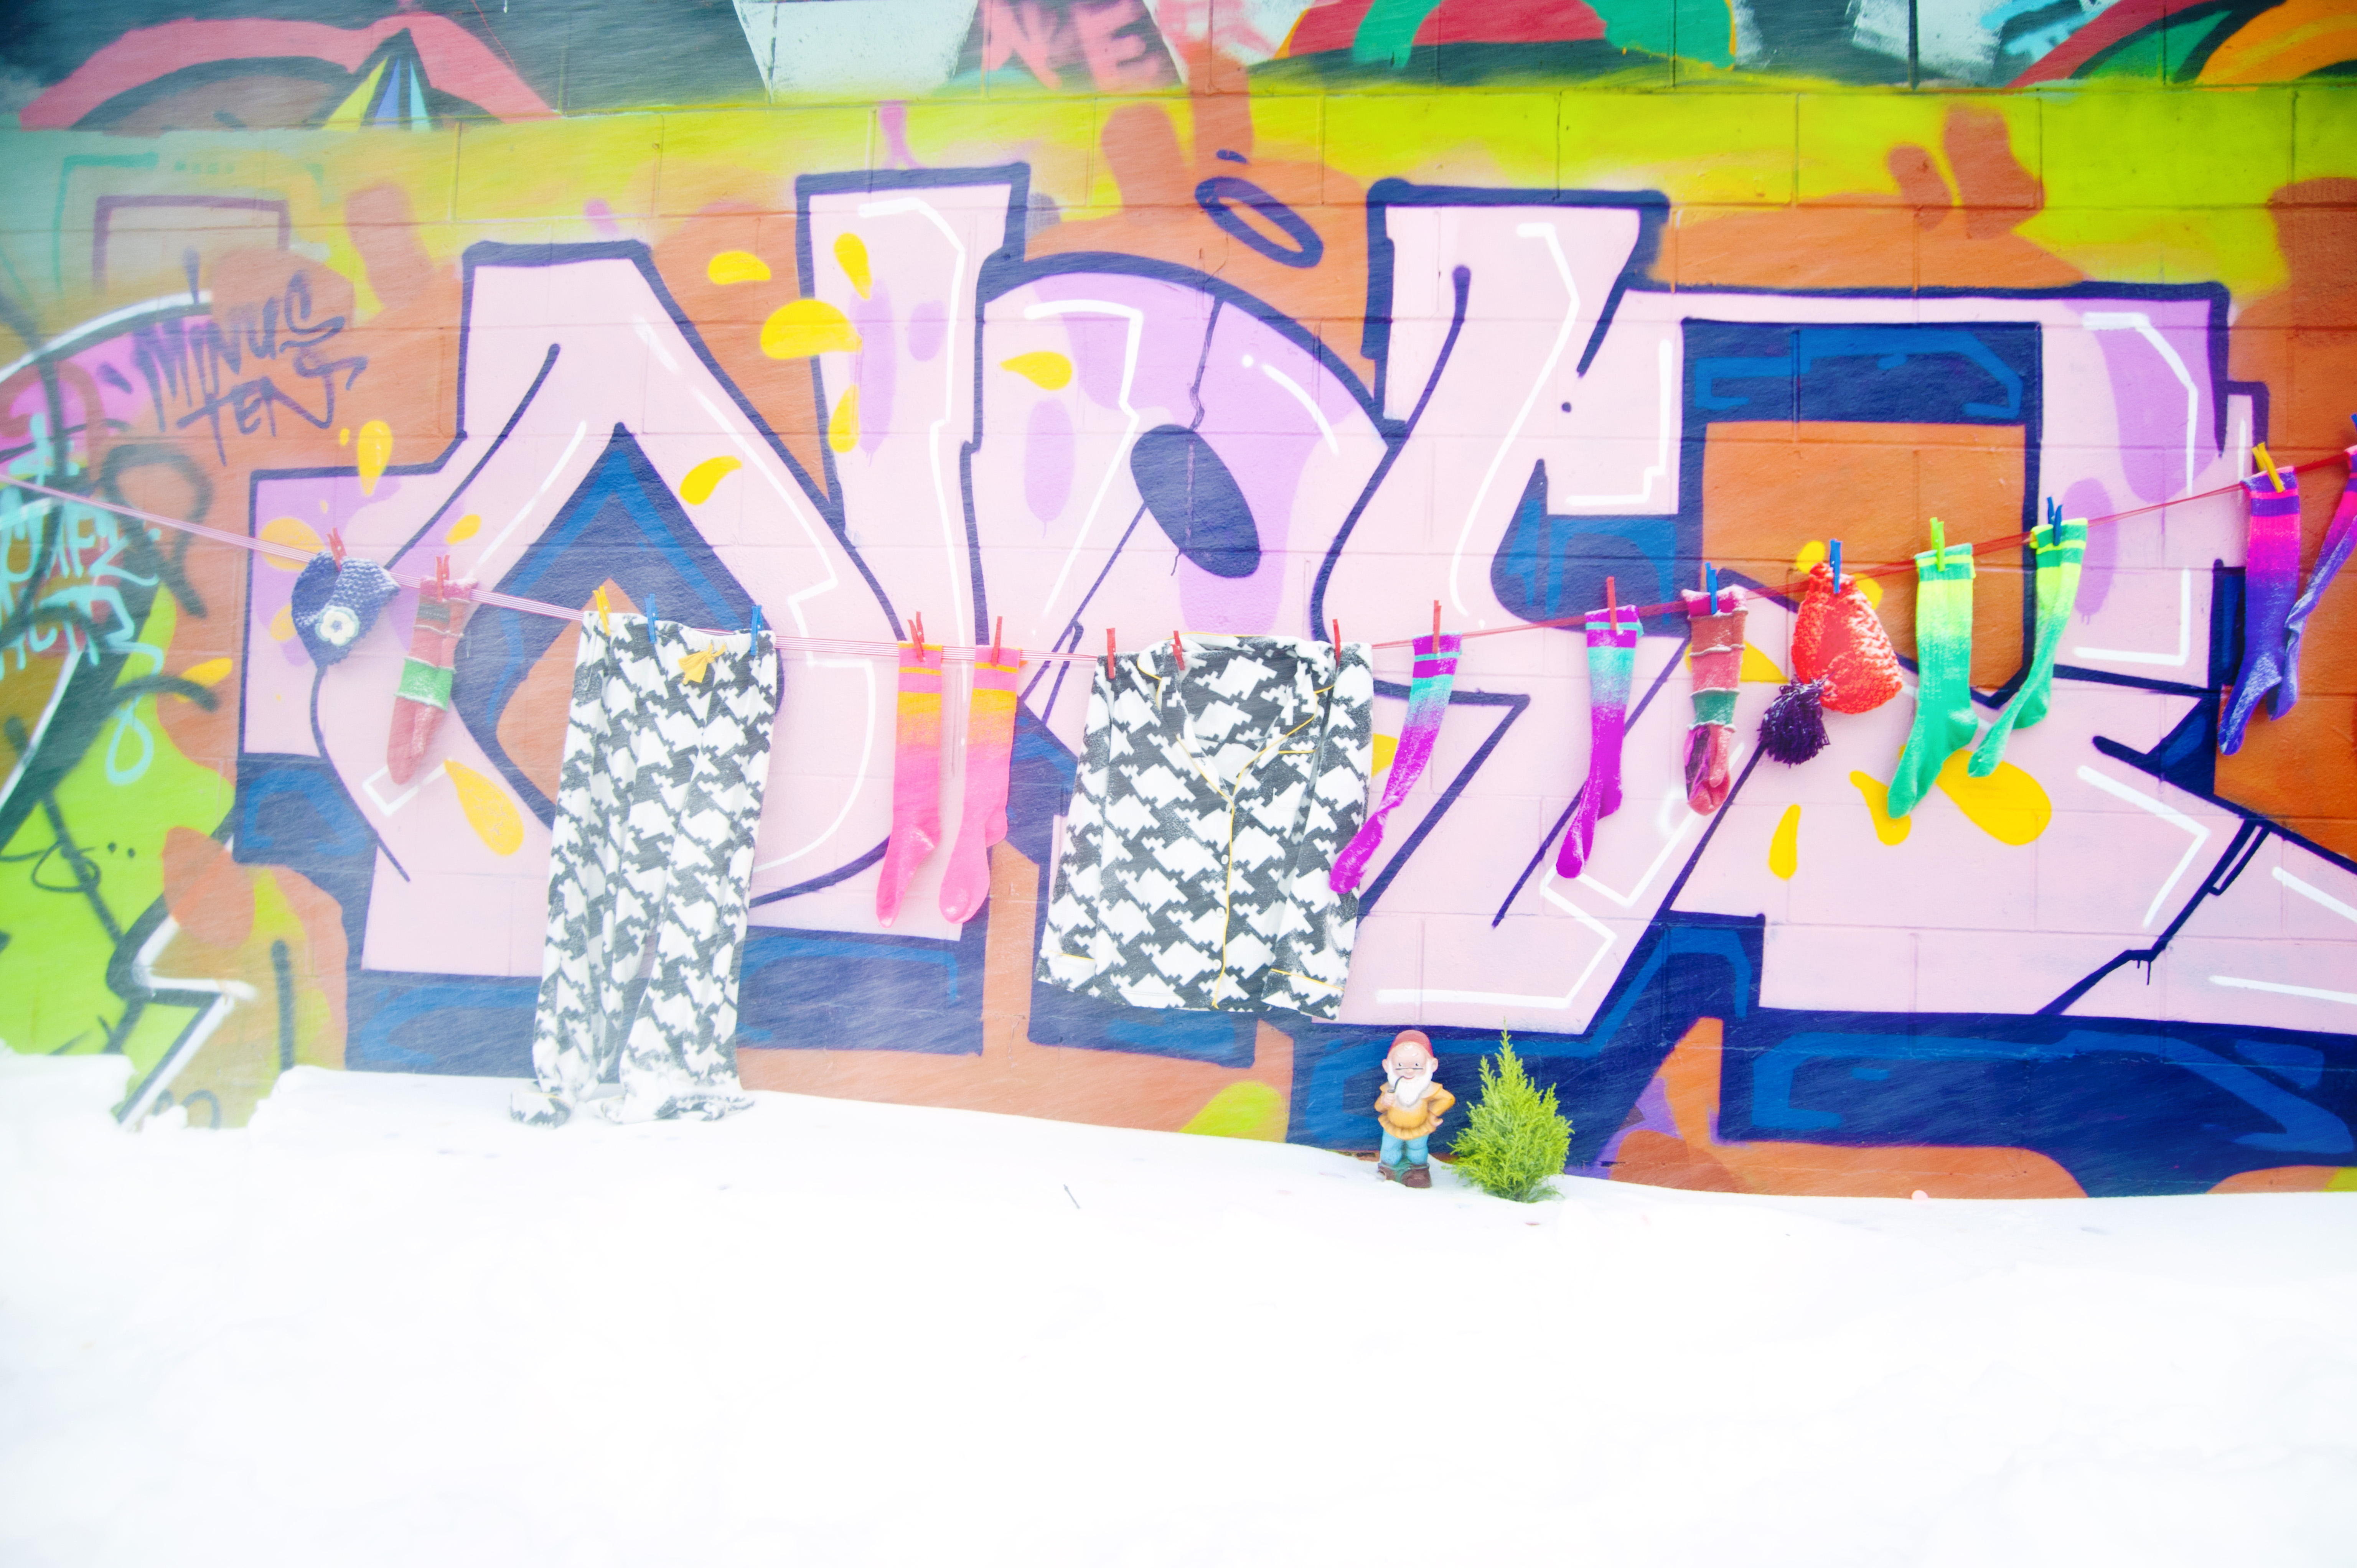 KW graffiti photography